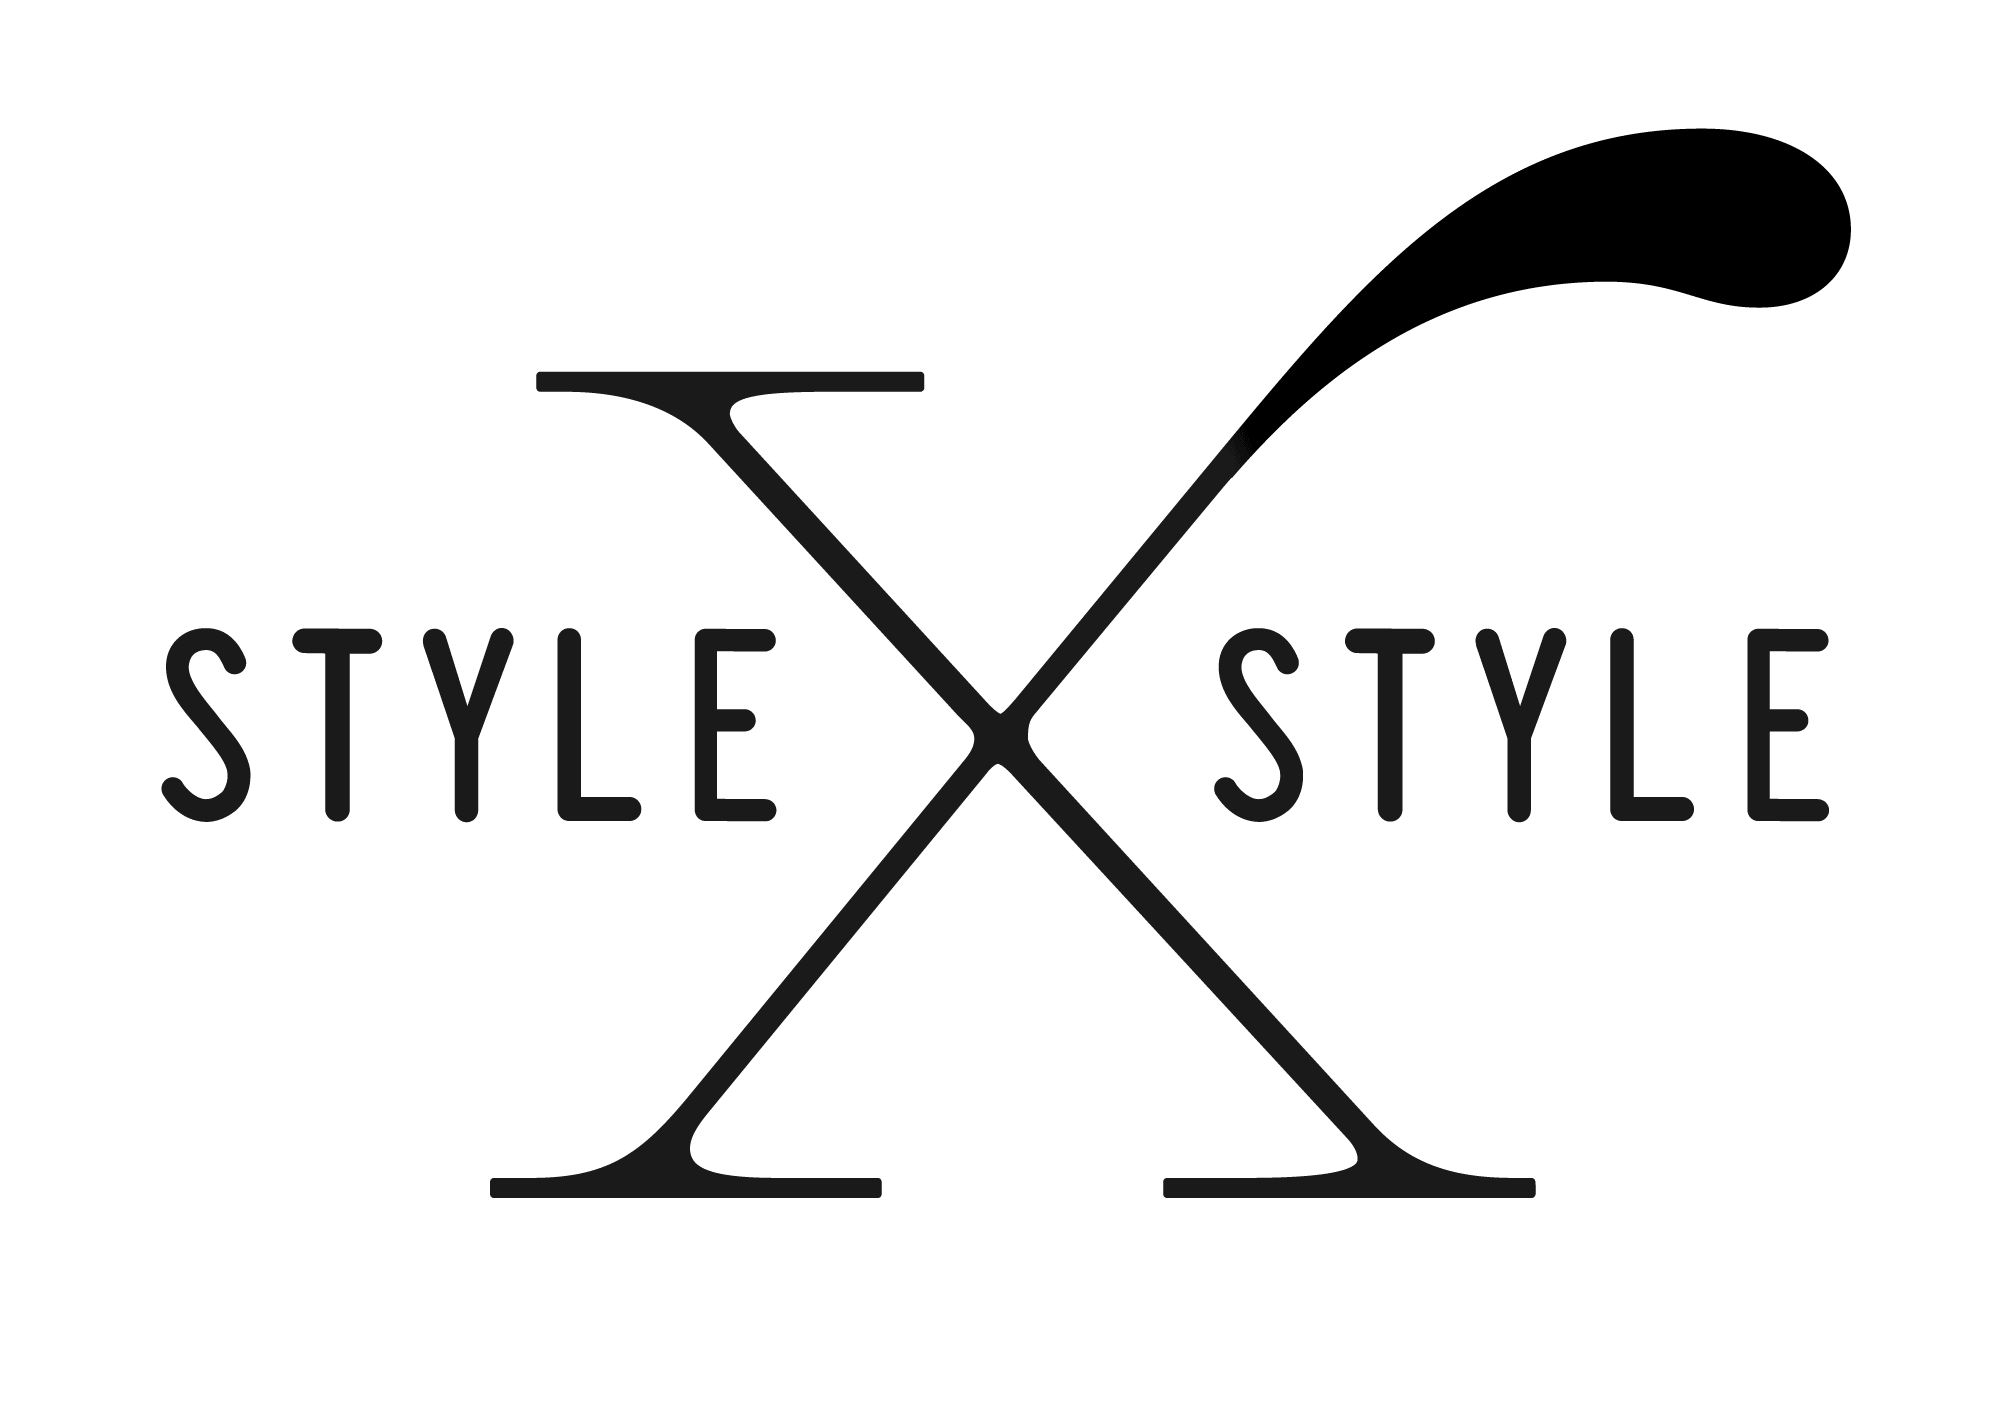 styleXstyle_logo_bnw.png